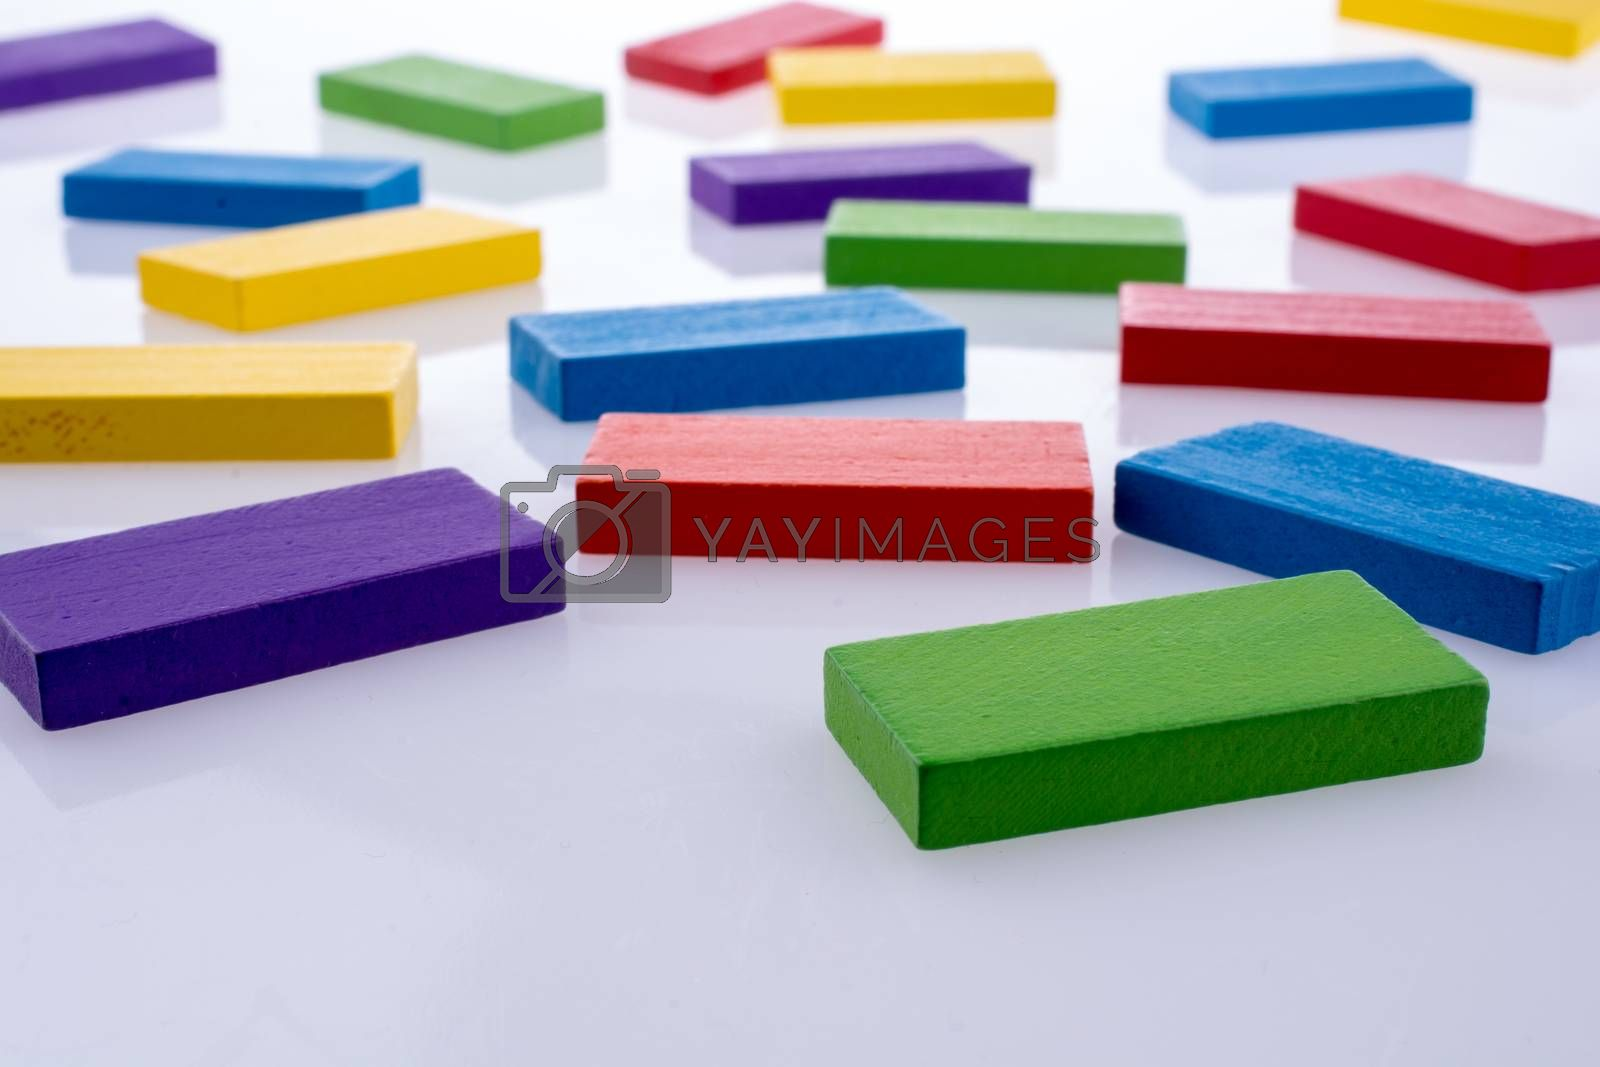 Color dominoes on a white background